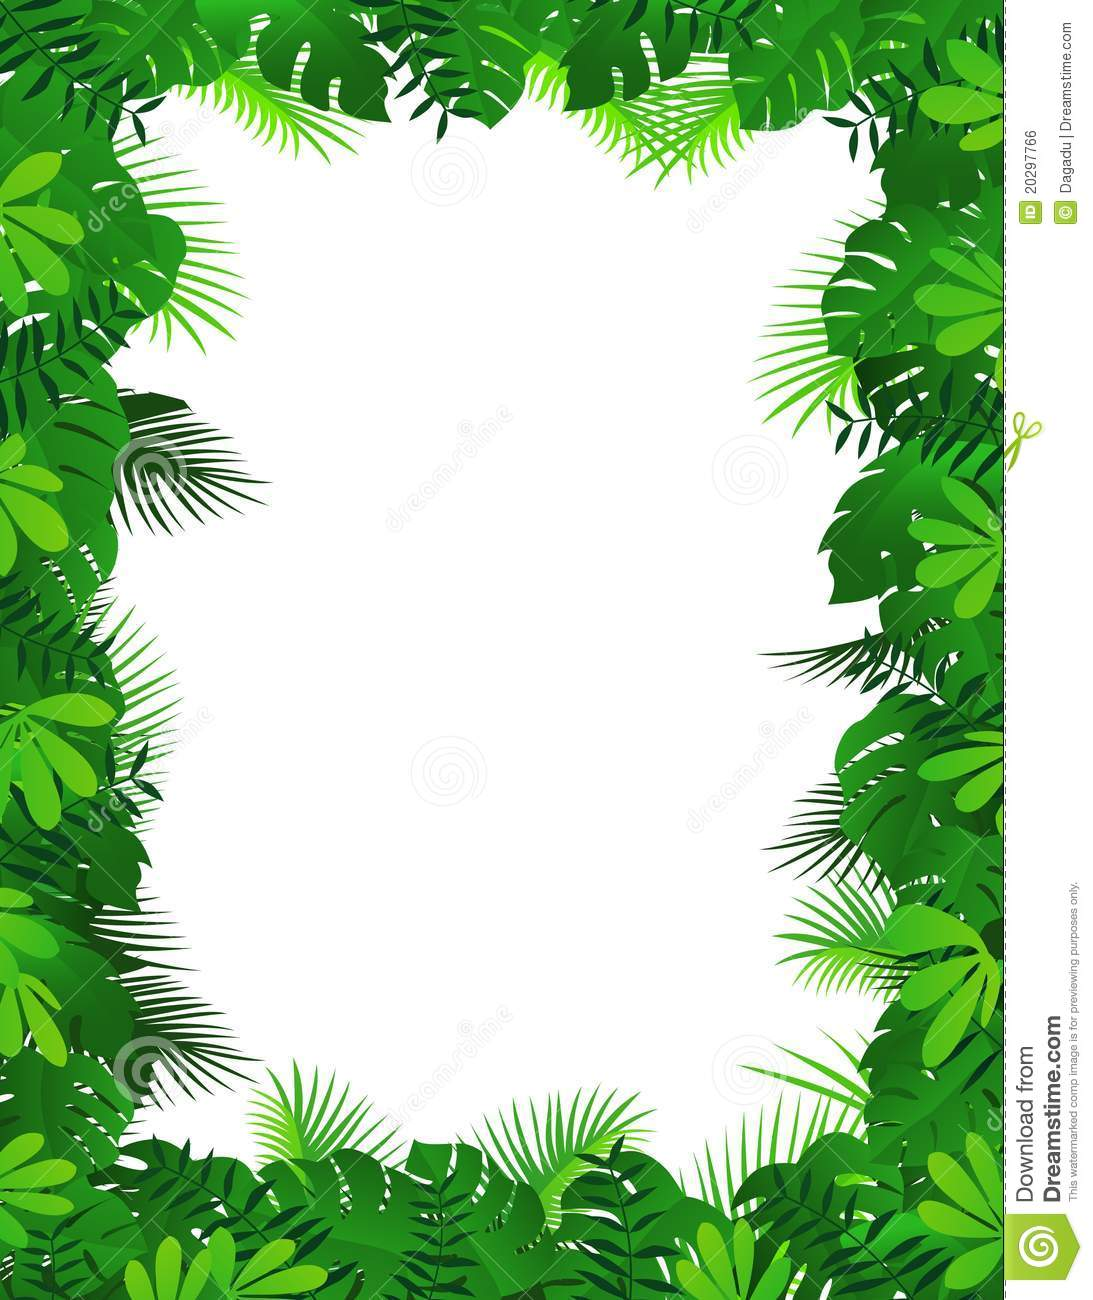 Forest border . Borders clipart nature